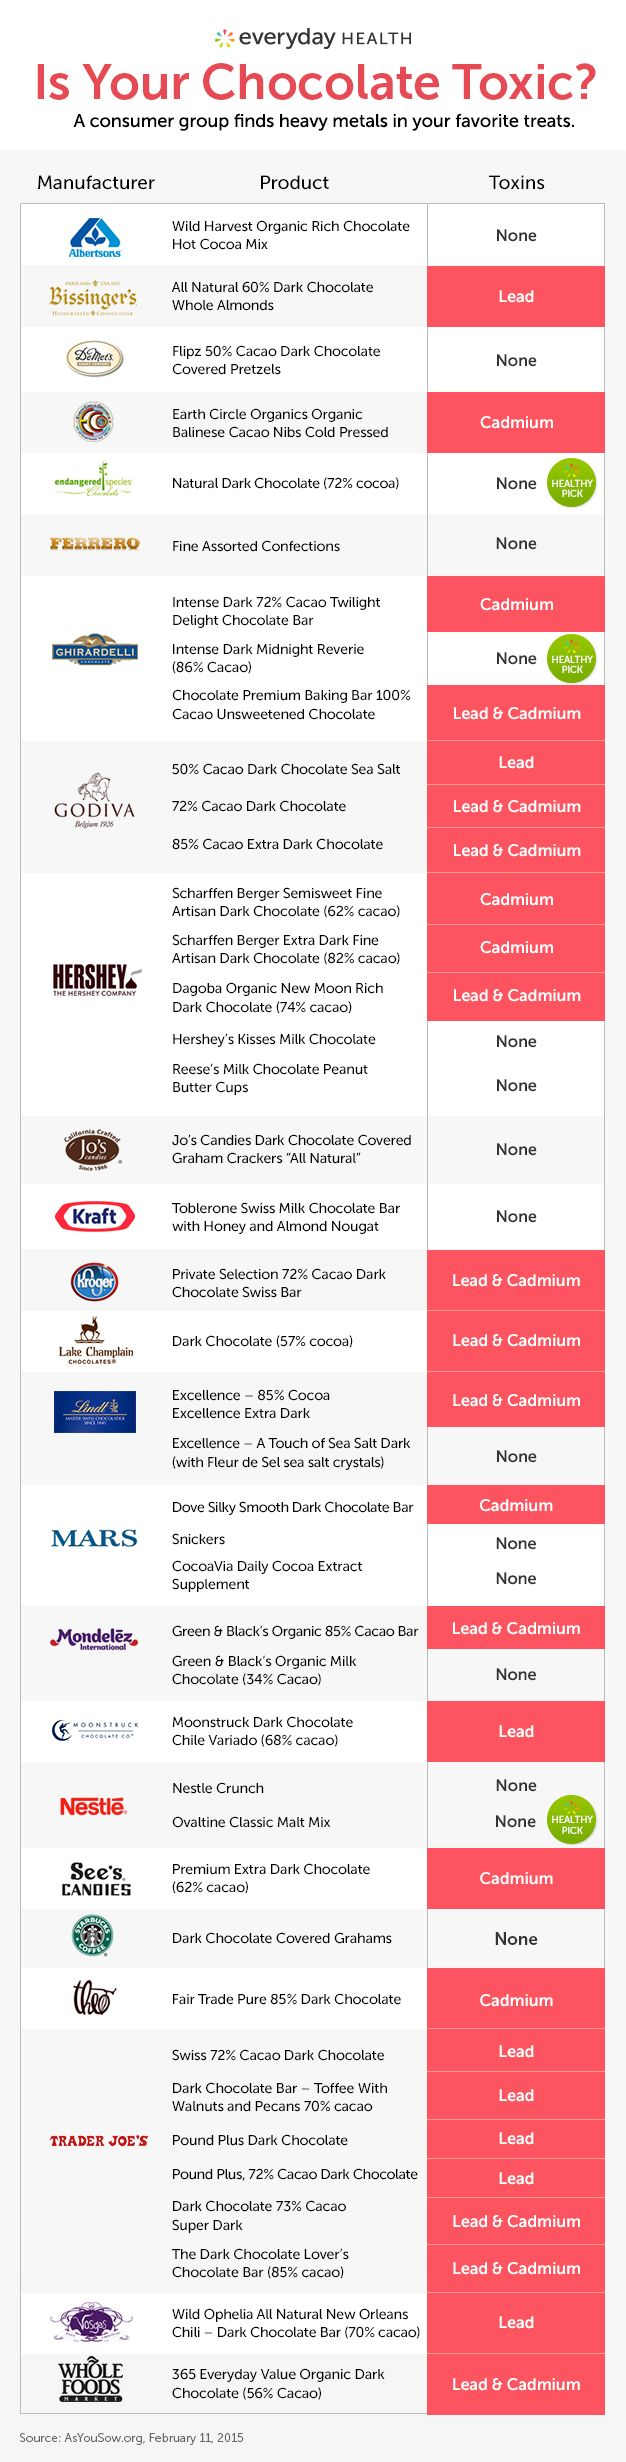 Researchers have found lead and cadmium in our chocolate.  Looks like some of the more expensive brands. Fortunately for me, I buy the cheaper stuff!